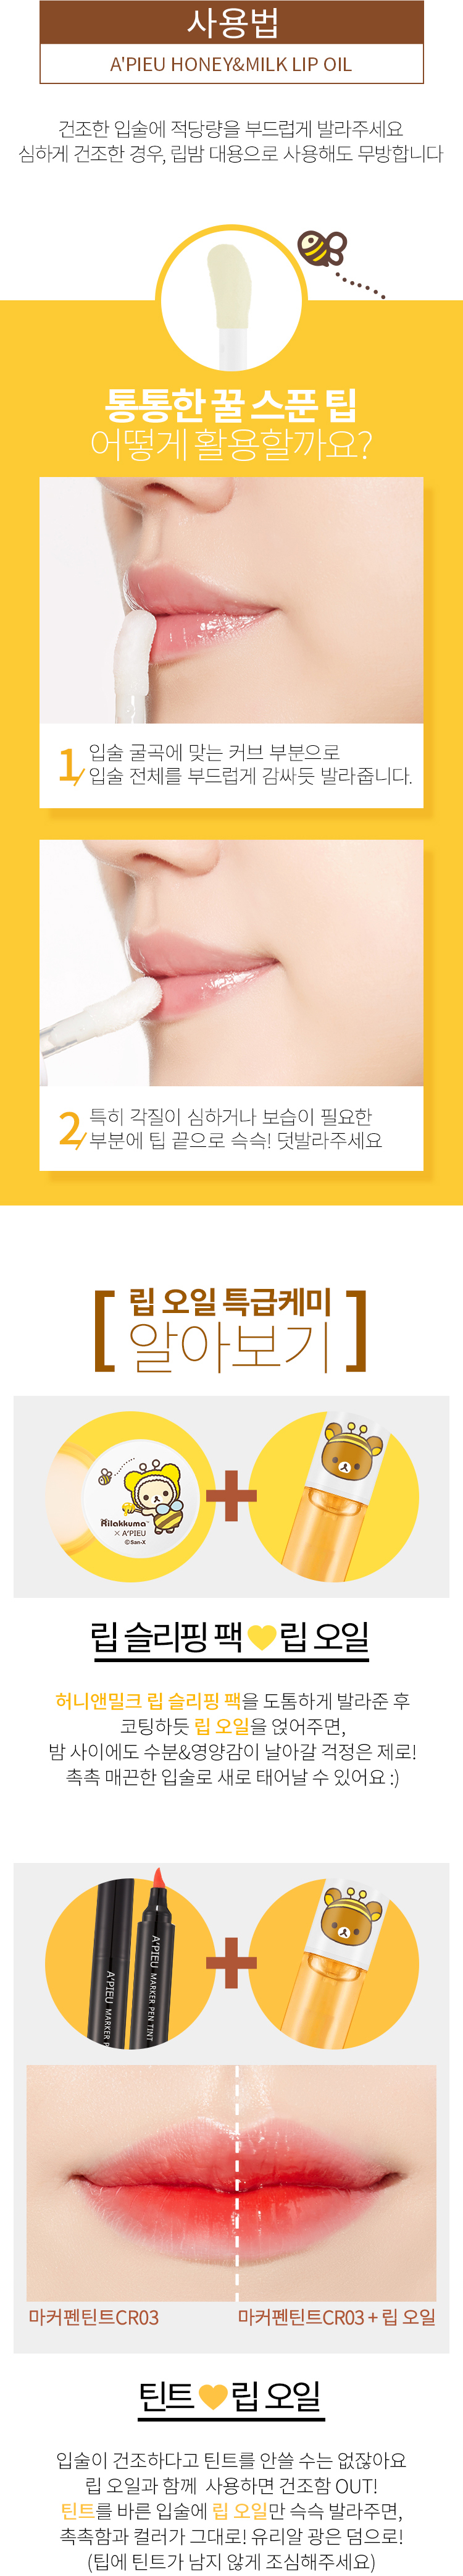 APIEU_Honey_Milk_Lip_Oil_Rilakkuma_Edition_04.jpg